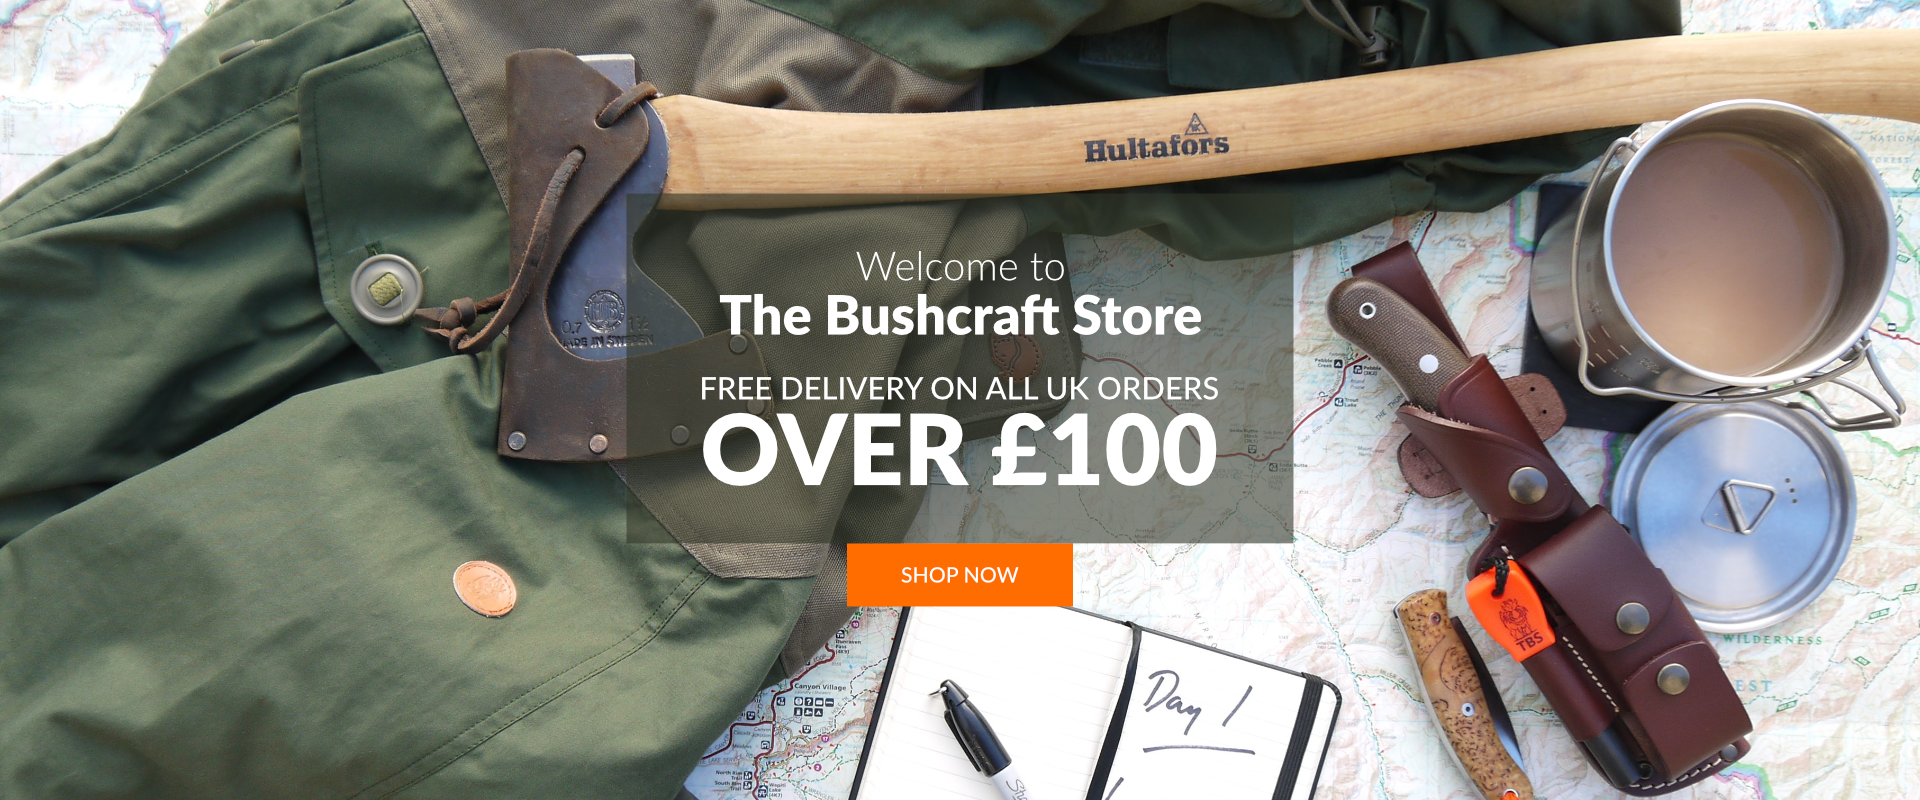 Free Delivery on orders over £100 at The Bushcraft Store